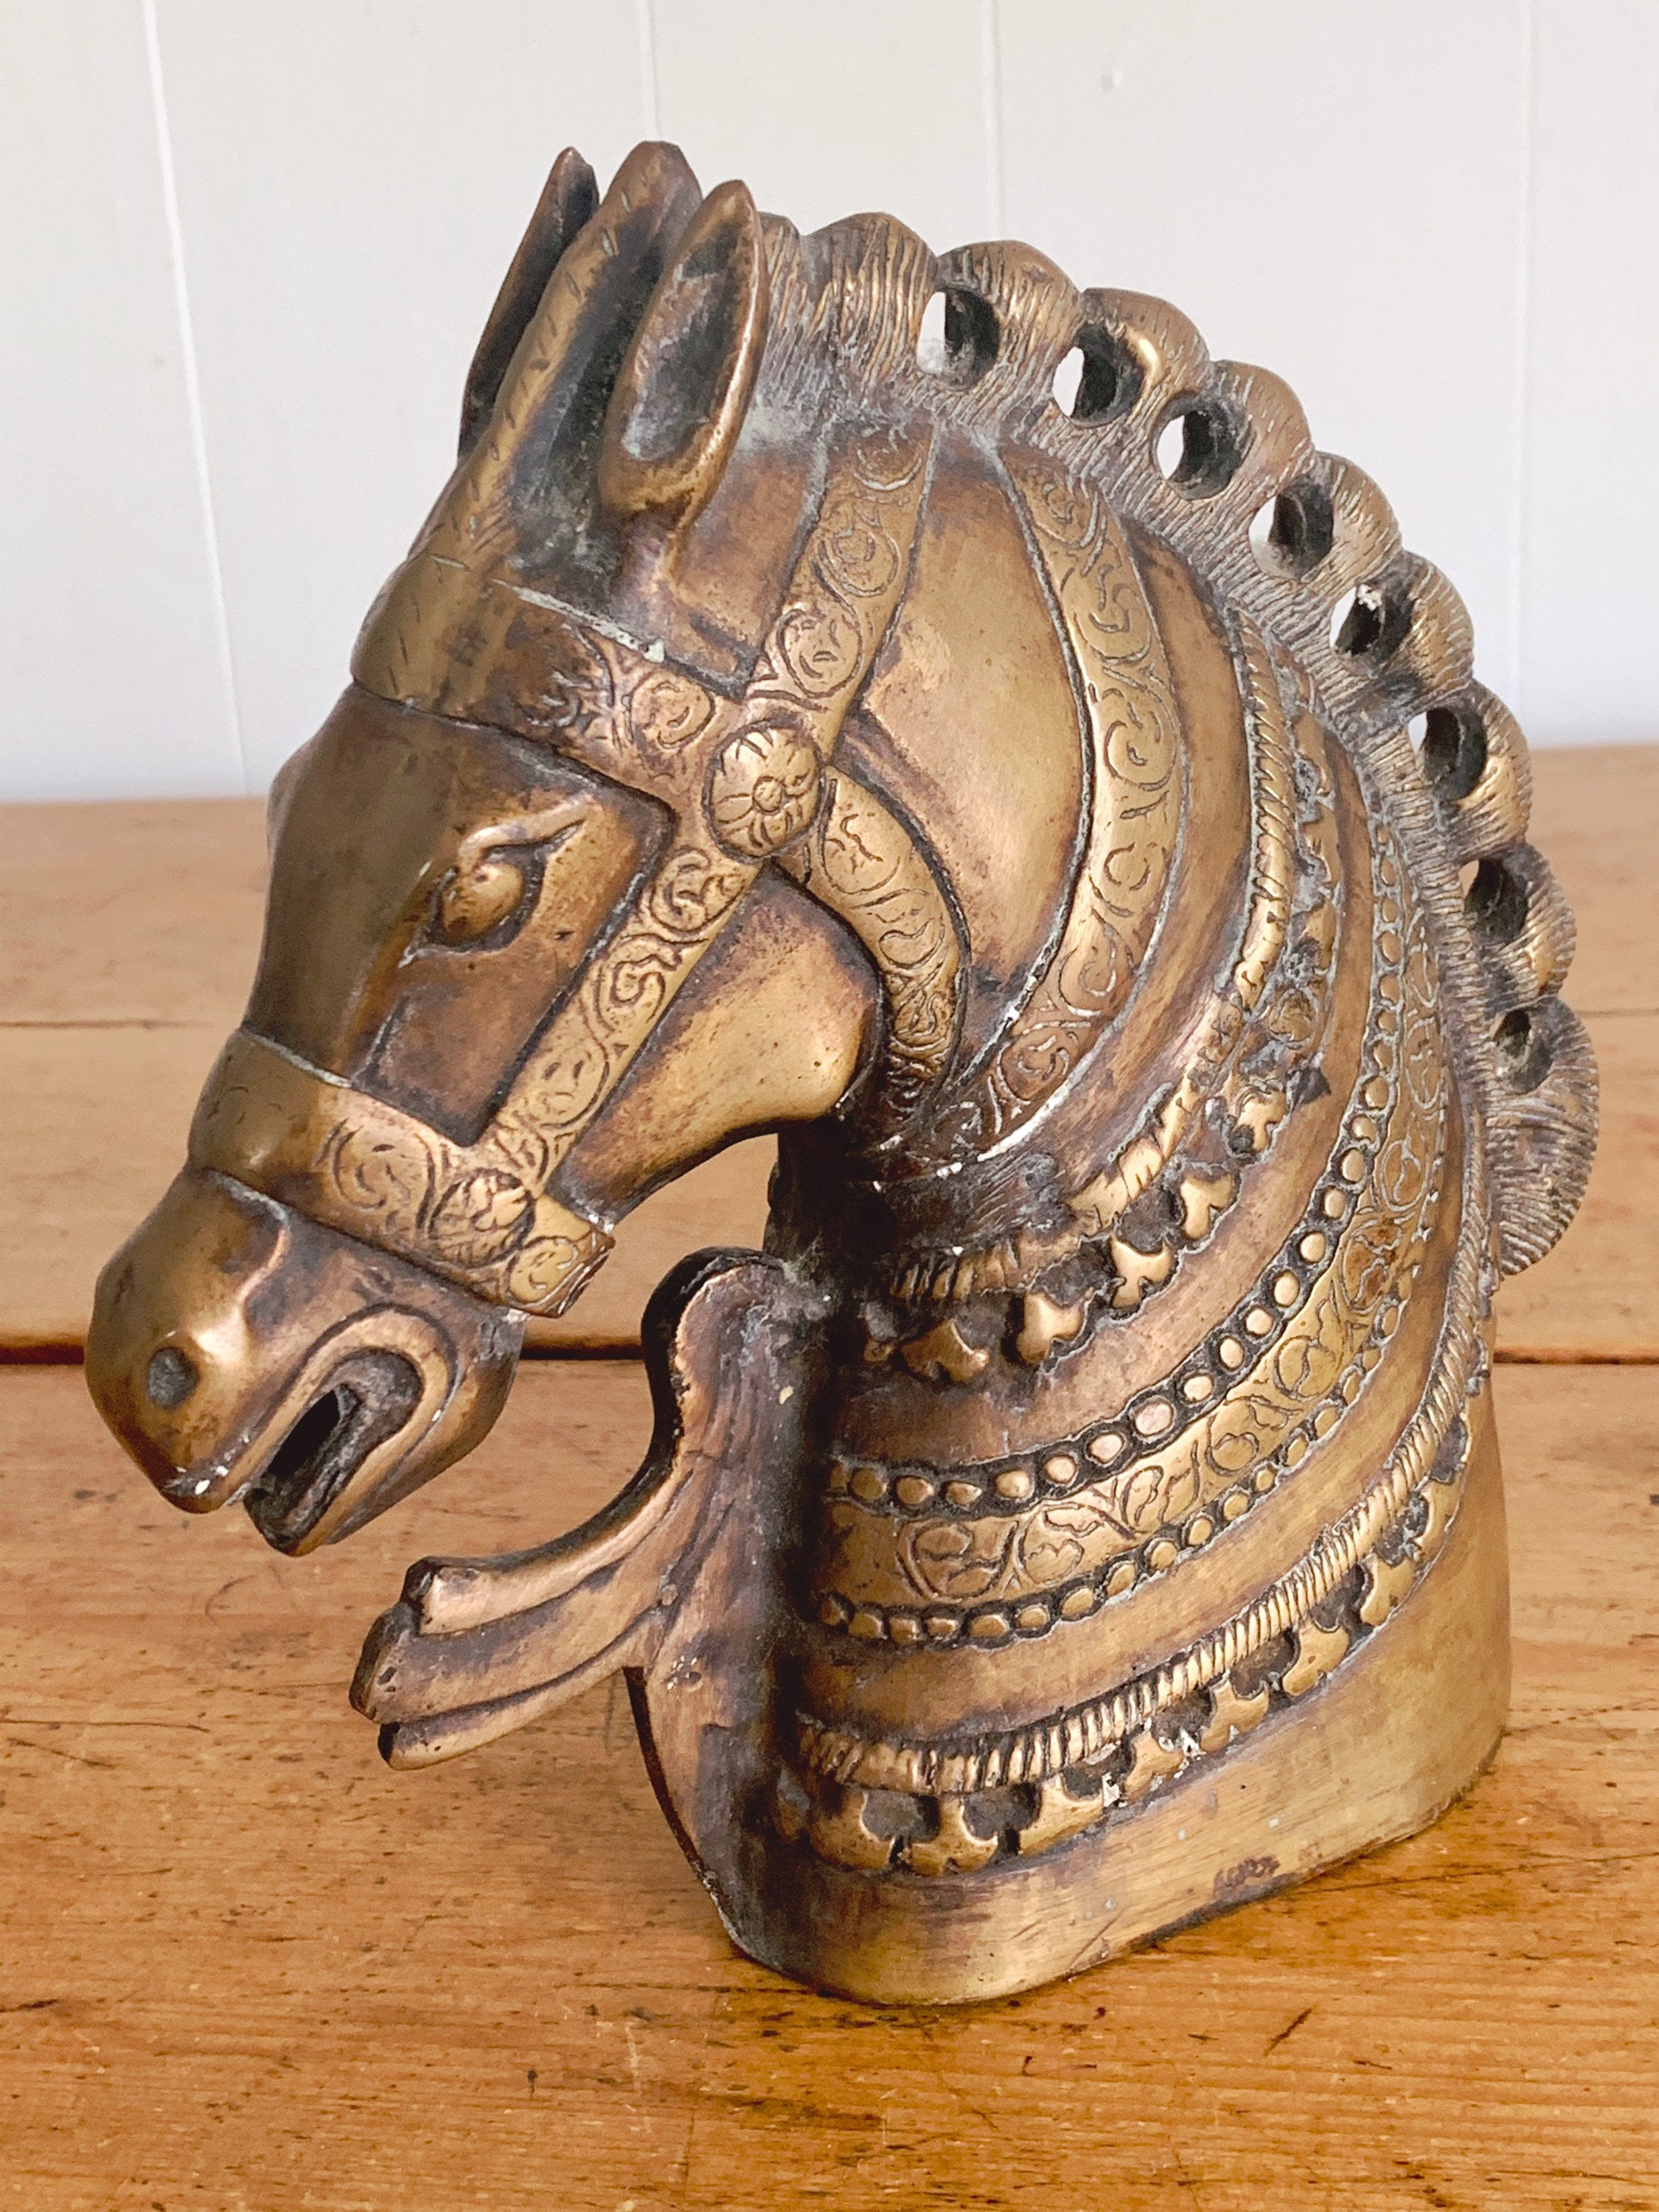 Pair of Vintage Mid Century Highly Decorative Bronze Horse Head Bookends | Horse Sculptures Equestrian Library and Office Decor